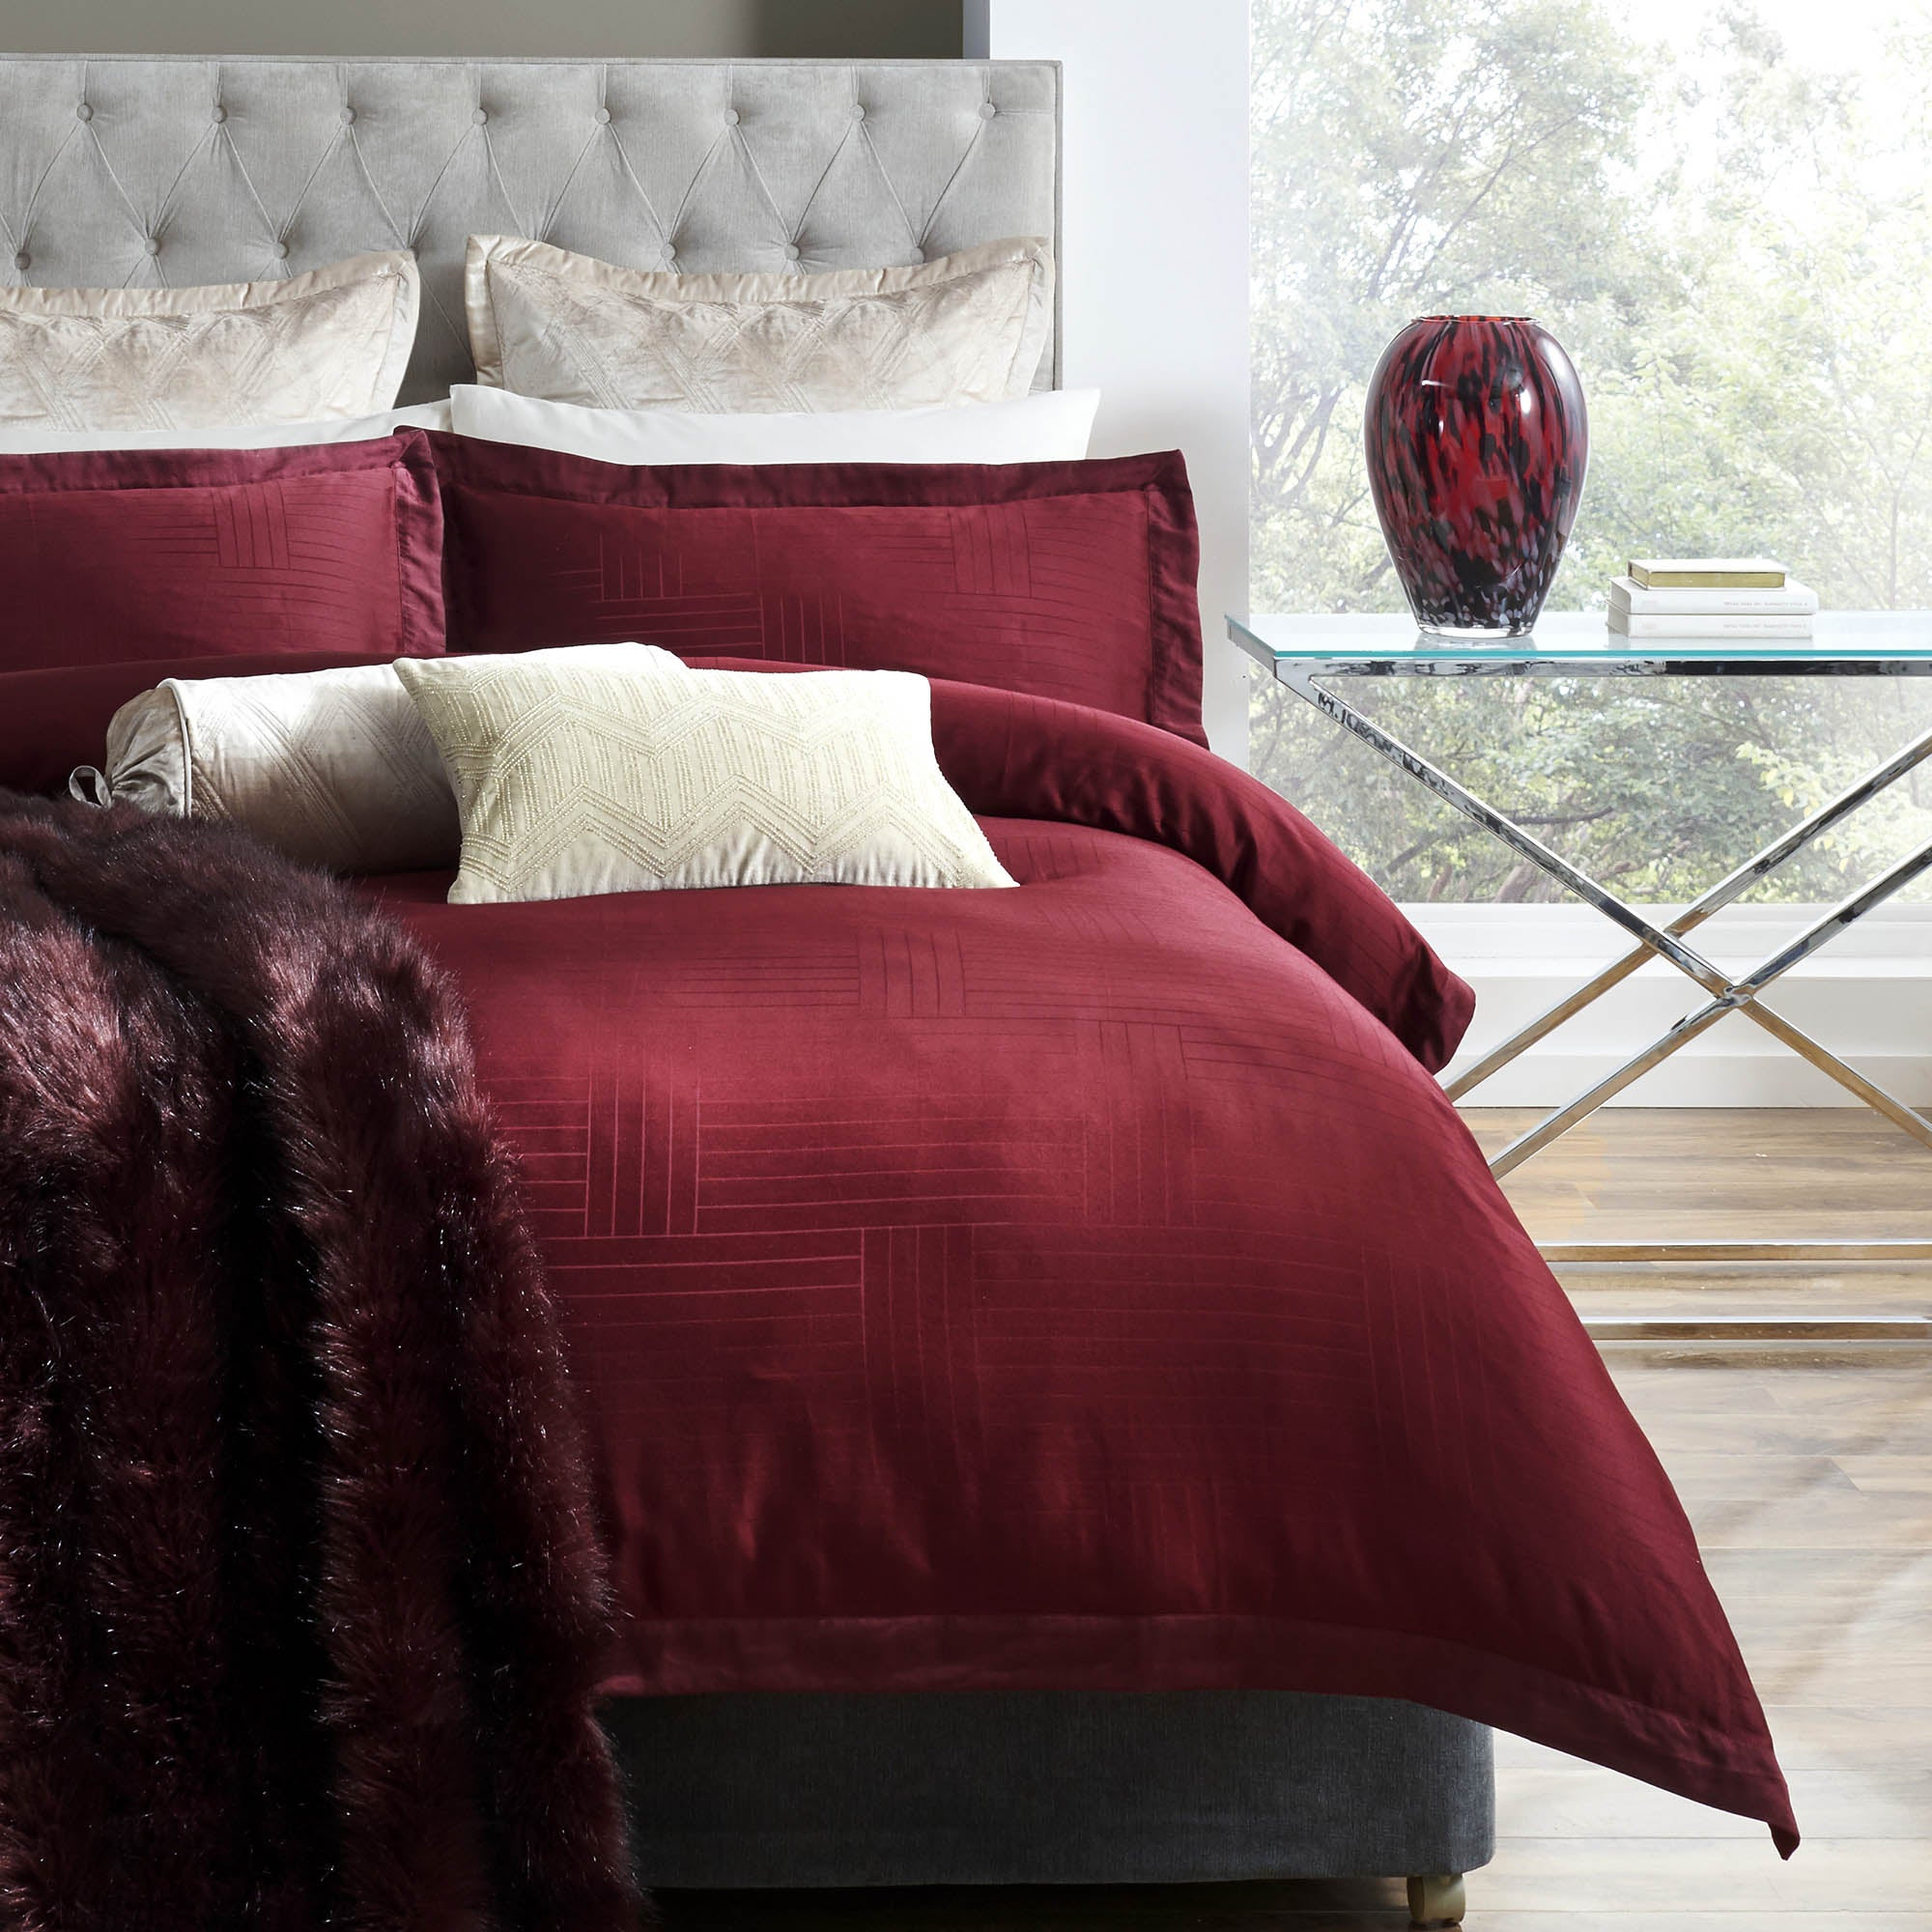 Image of 5A Fifth Avenue Empire Jacquard 100% Cotton Duvet Cover and Pillowcase Set Wine (Red)